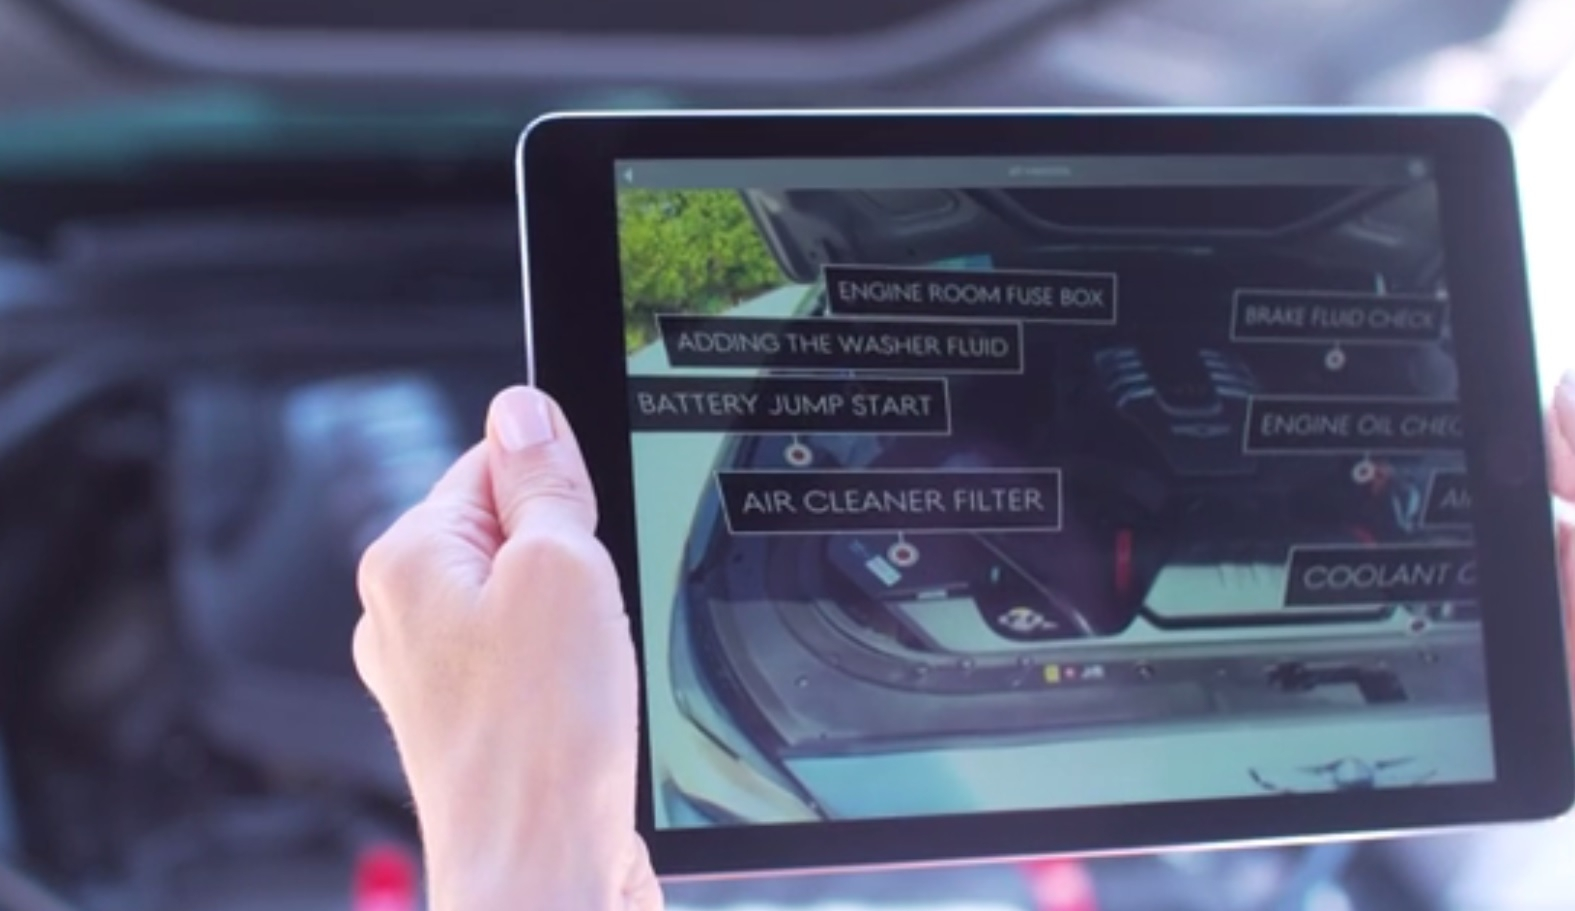 Genesis augmented reality car app